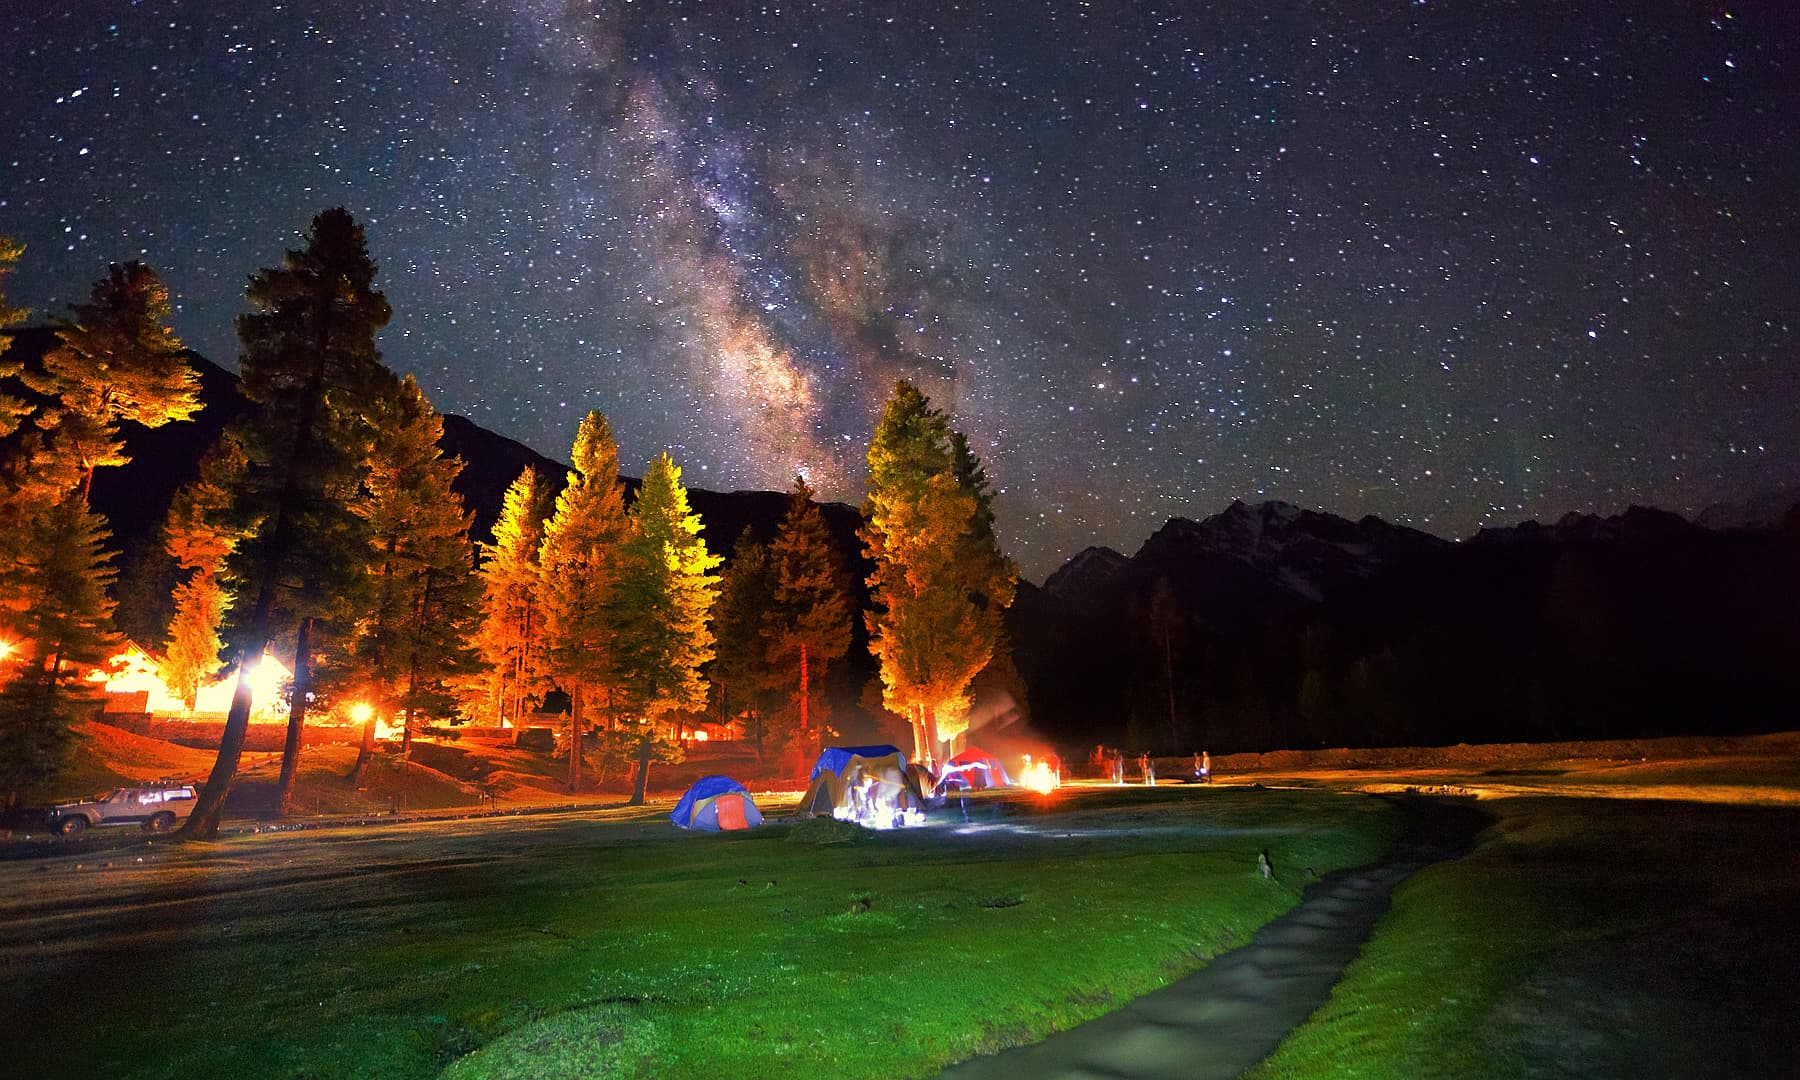 Night in Rama meadows